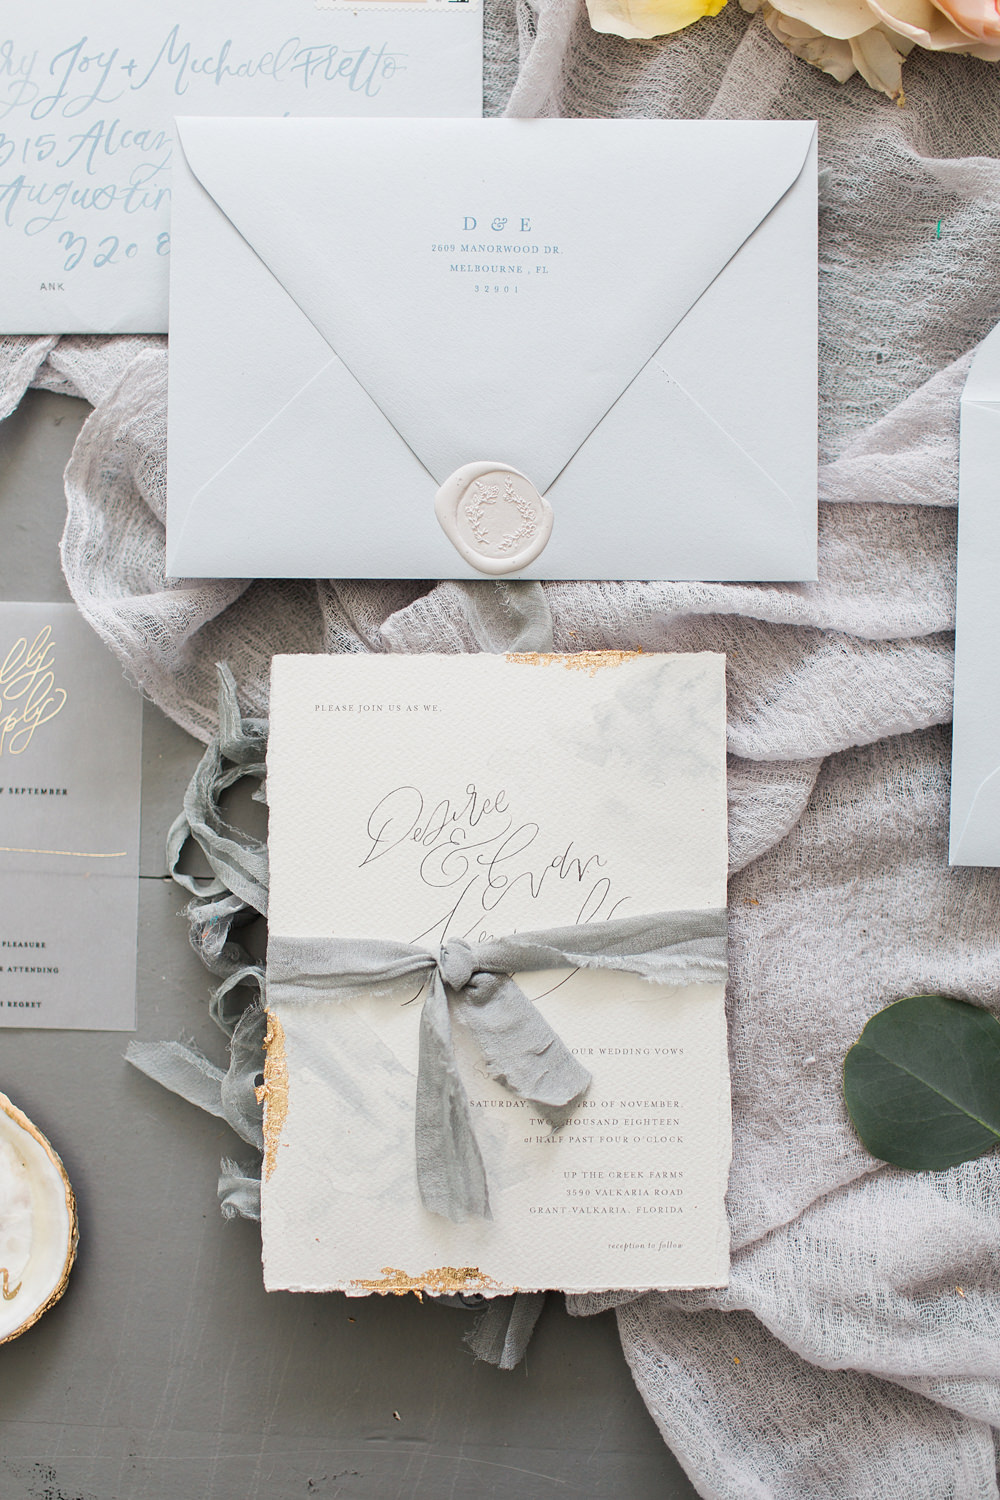 White and grey wedding invitation suite-flatlay style.